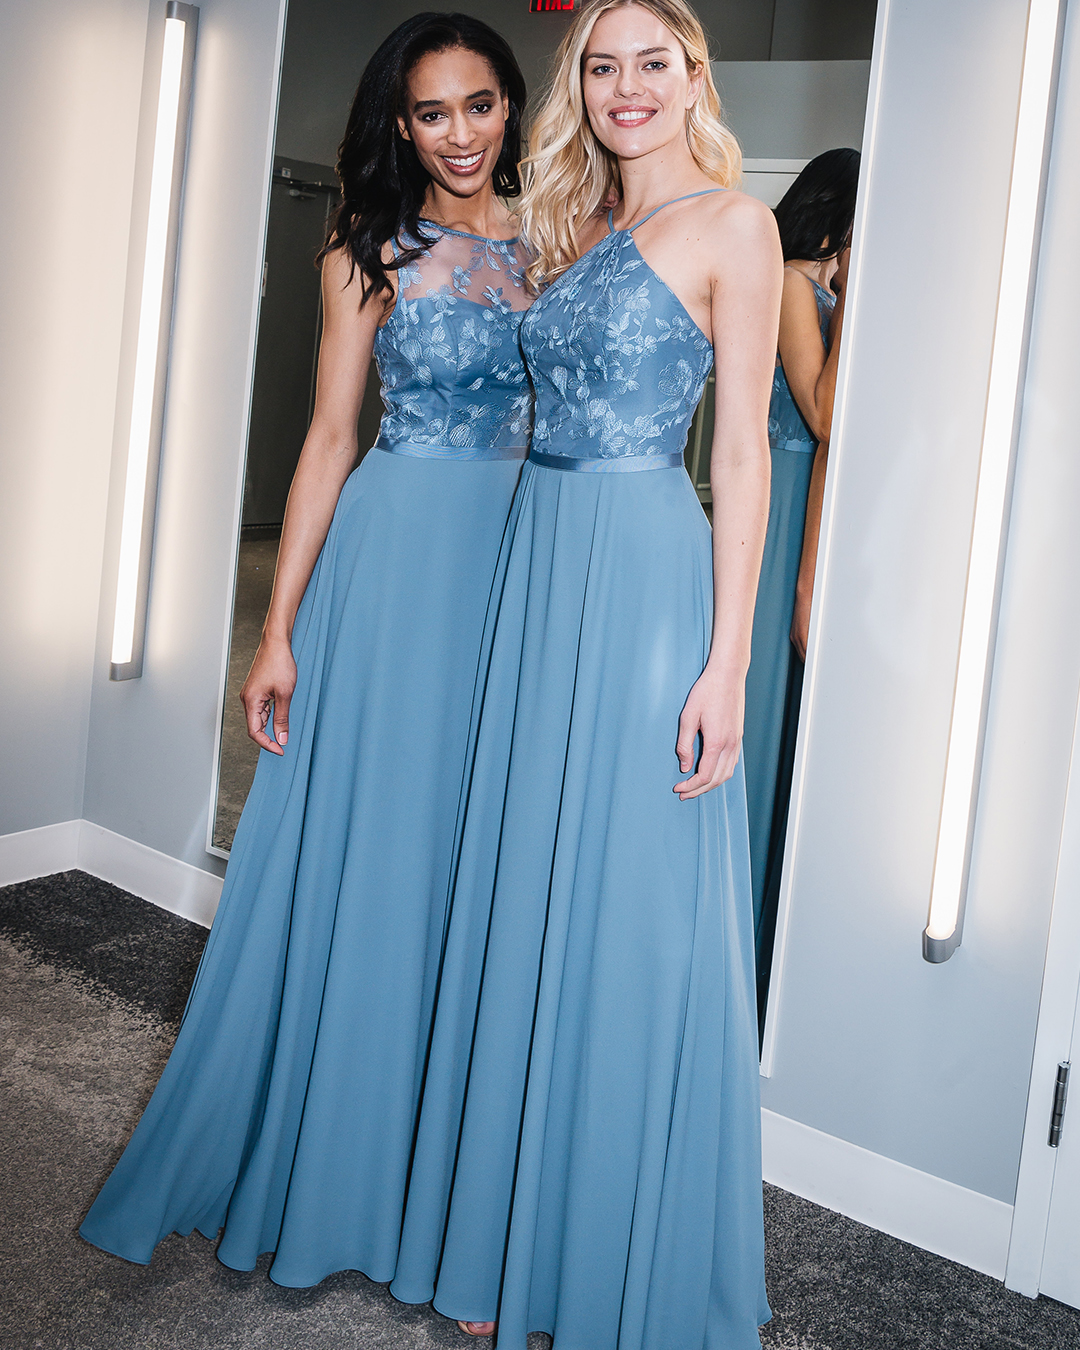 Two women in bridal shop in long blue bridesmaid dresses with embroidered bodice